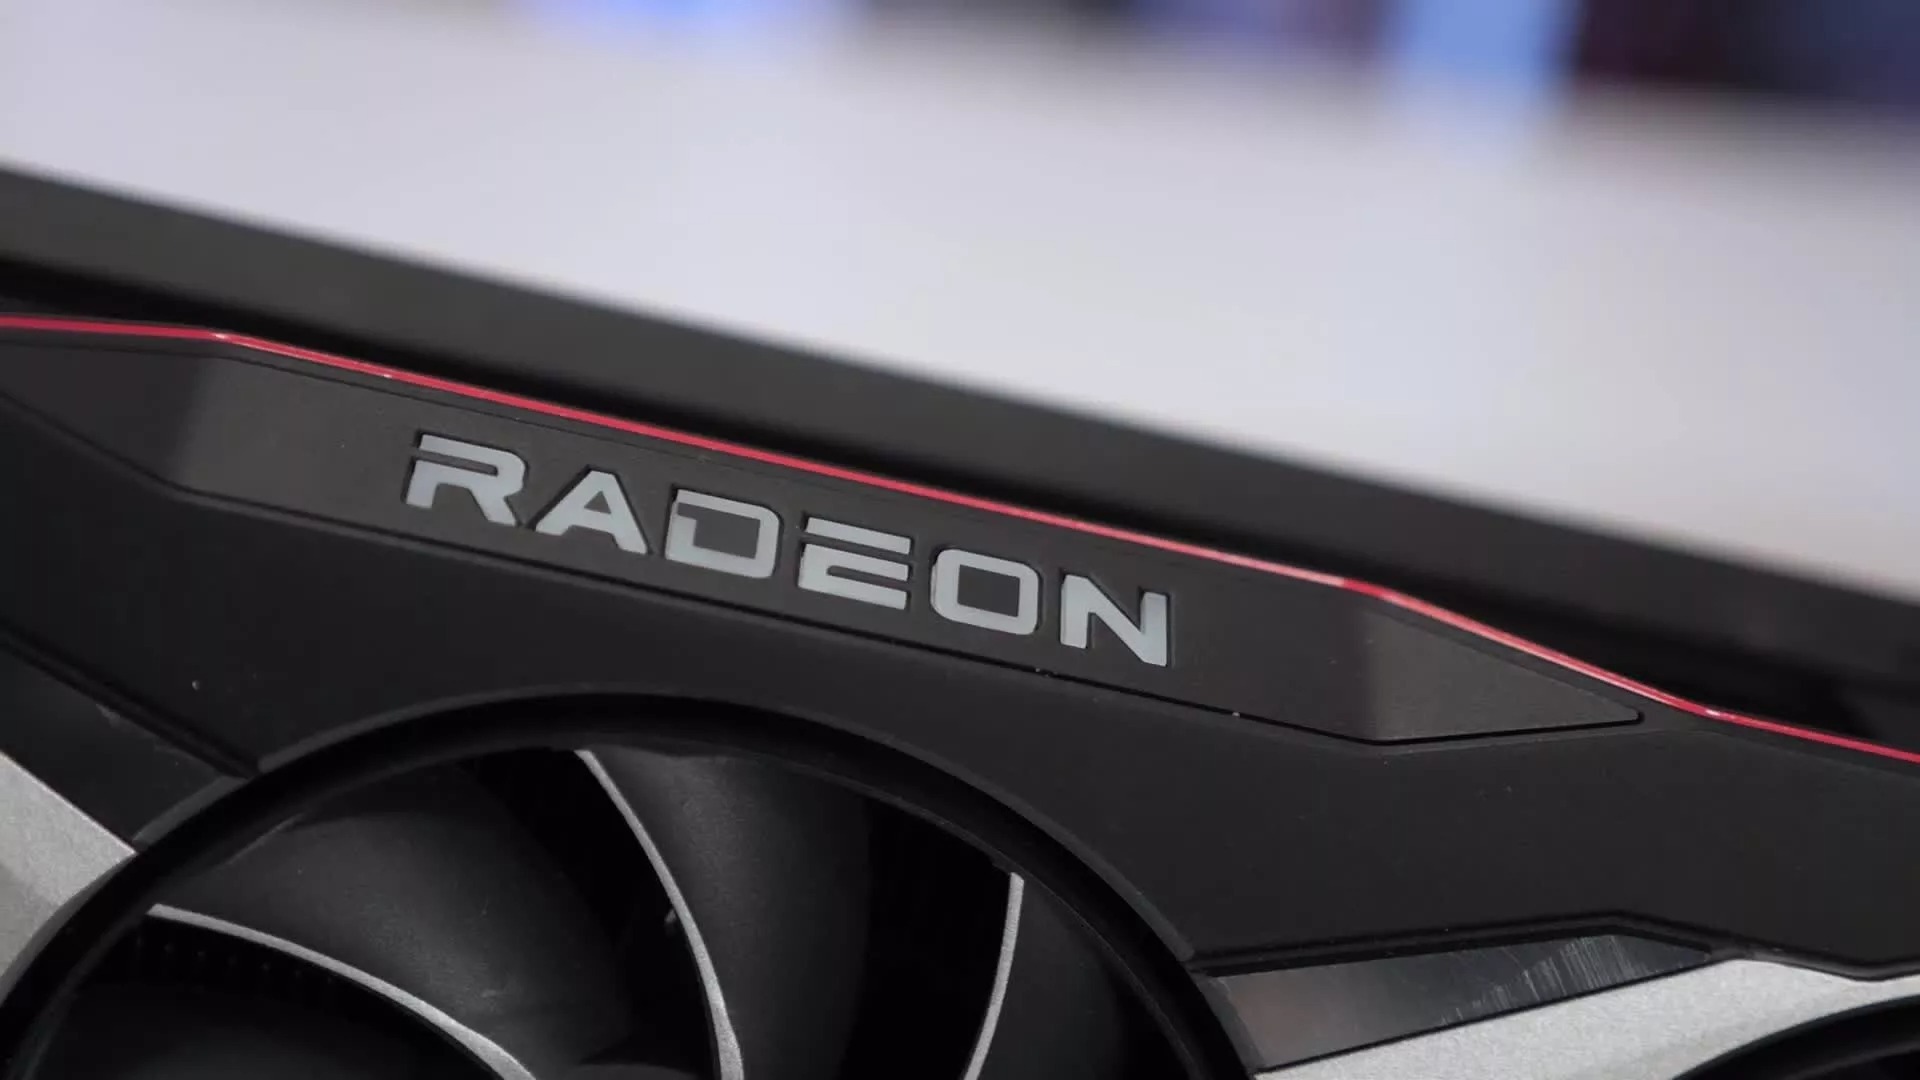 Nvidia's RTX 3090 may have outsold the entire Radeon RX 6000 series combined